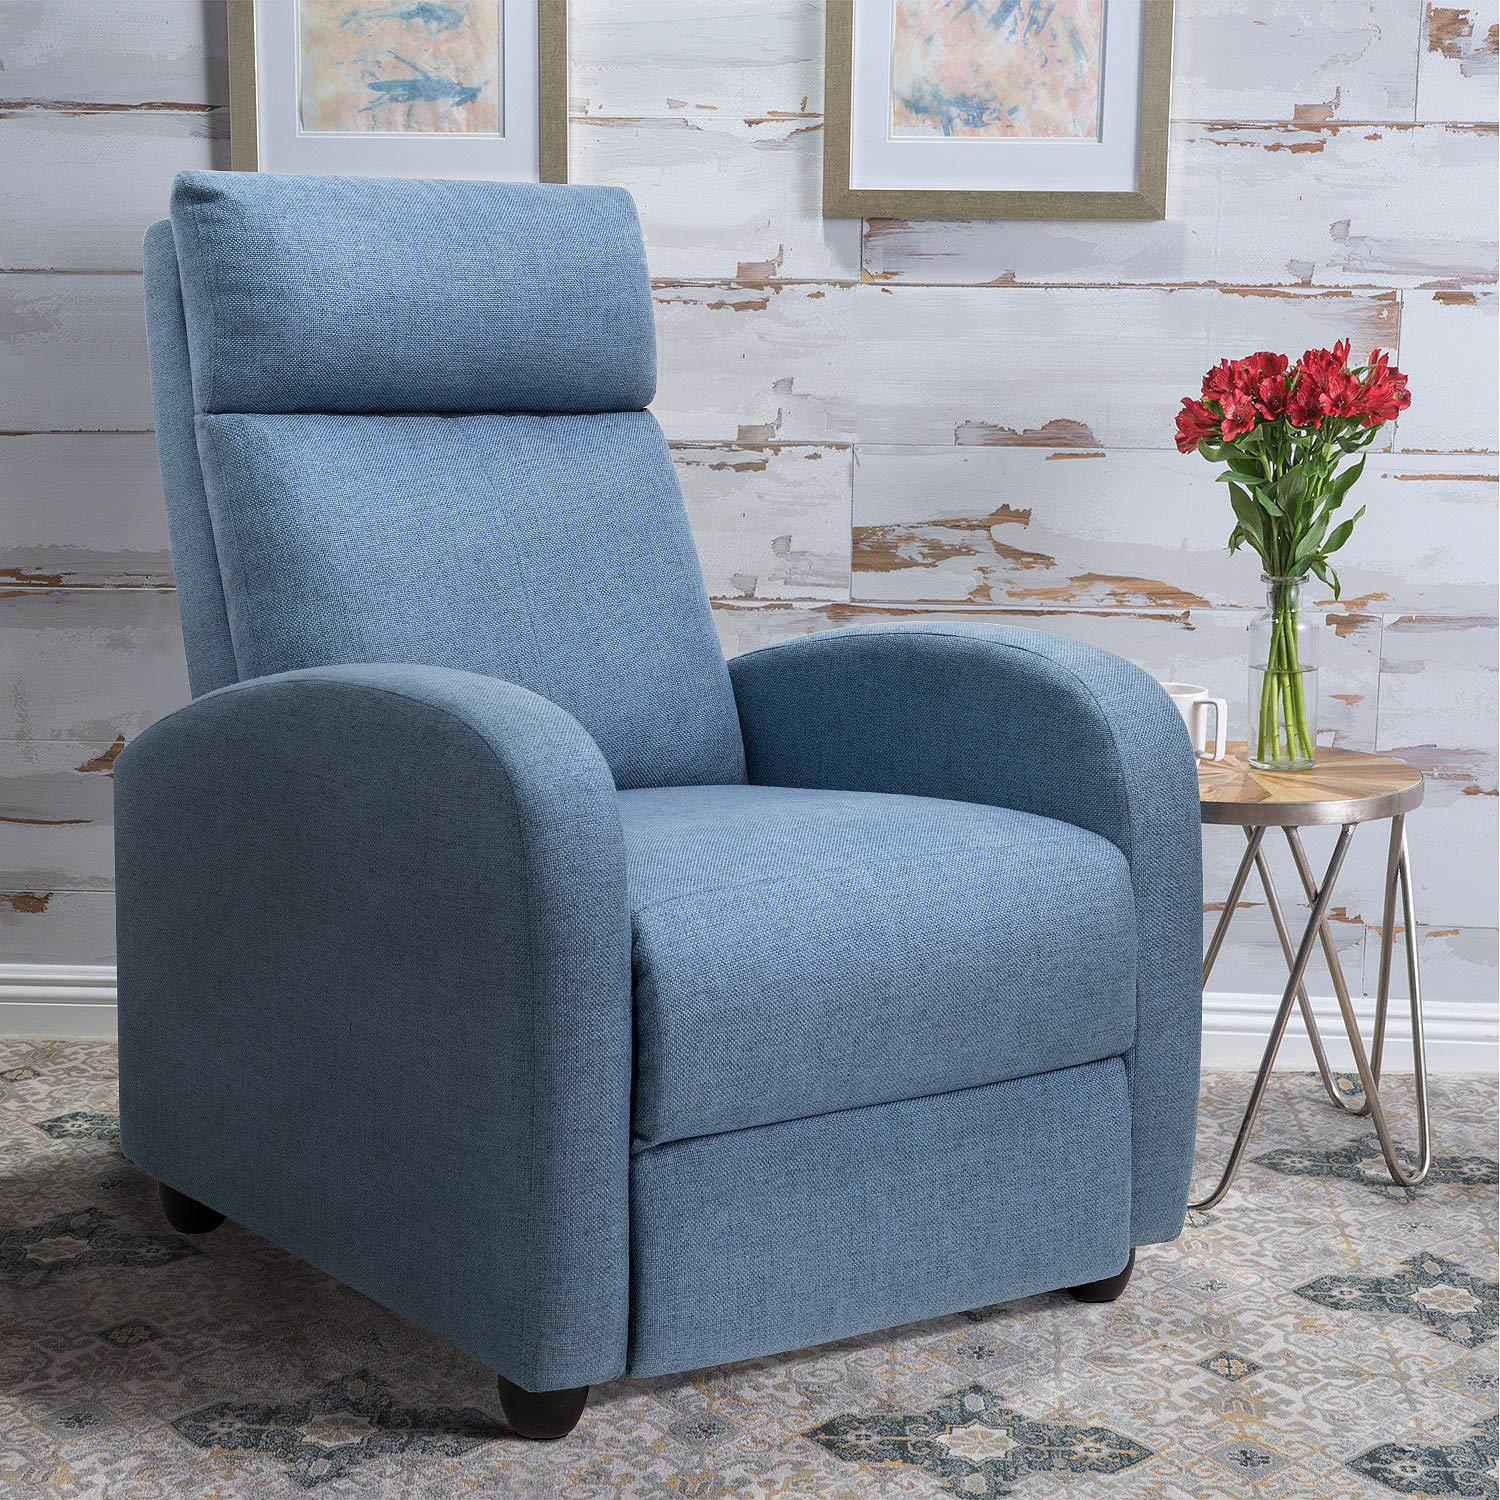 Tuoze Fabric Recliner comfortable chair for small spaces